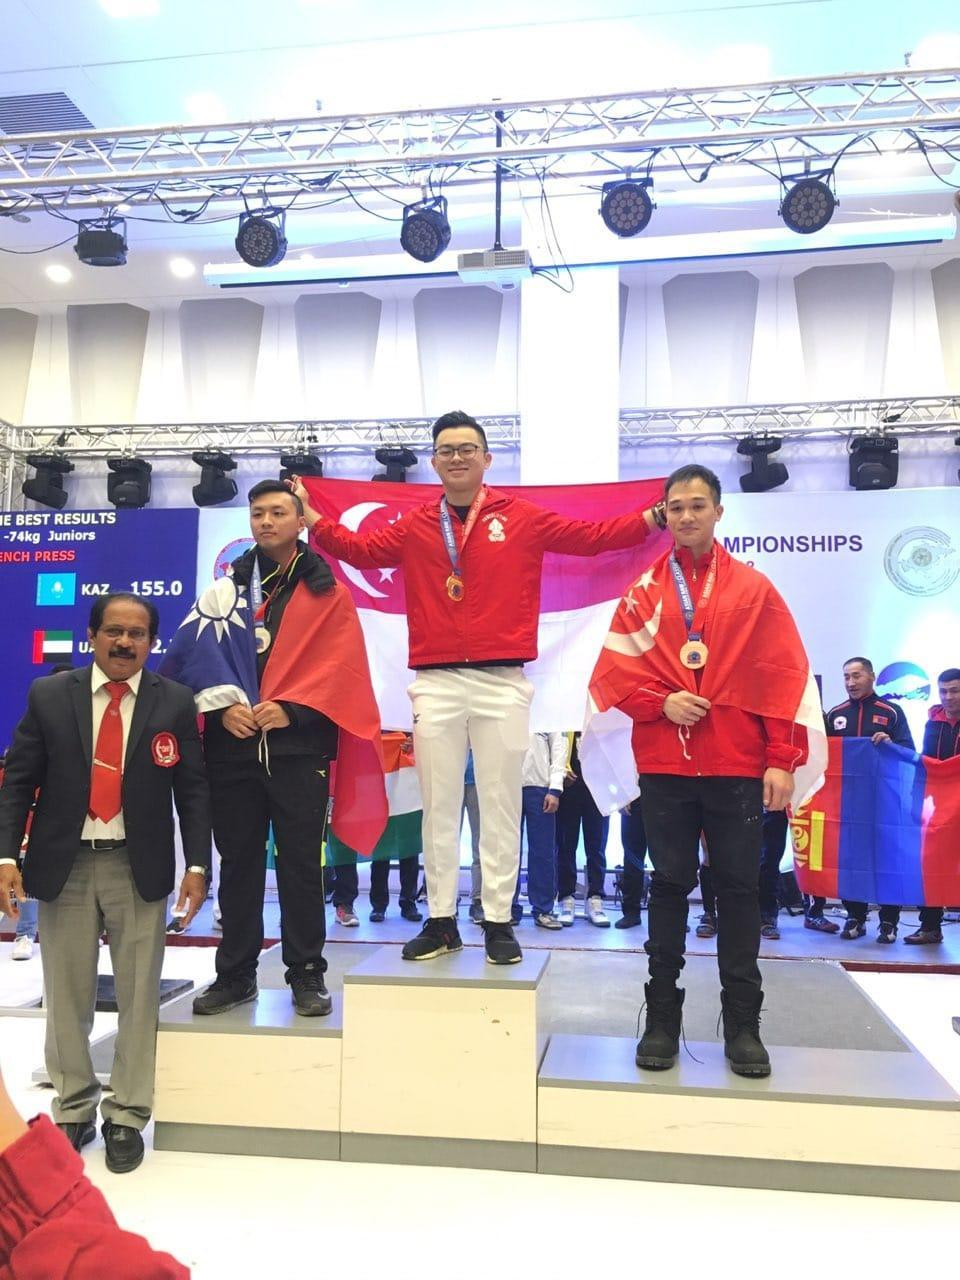 Singapore powerlifter Matthew Yap (centre) won two golds and set a new Asian record in the squat lift during the Asian Classic Powerlifting Championships in Ulaan Baatar on 6 December, 2018. (PHOTO: Matthias Yap)